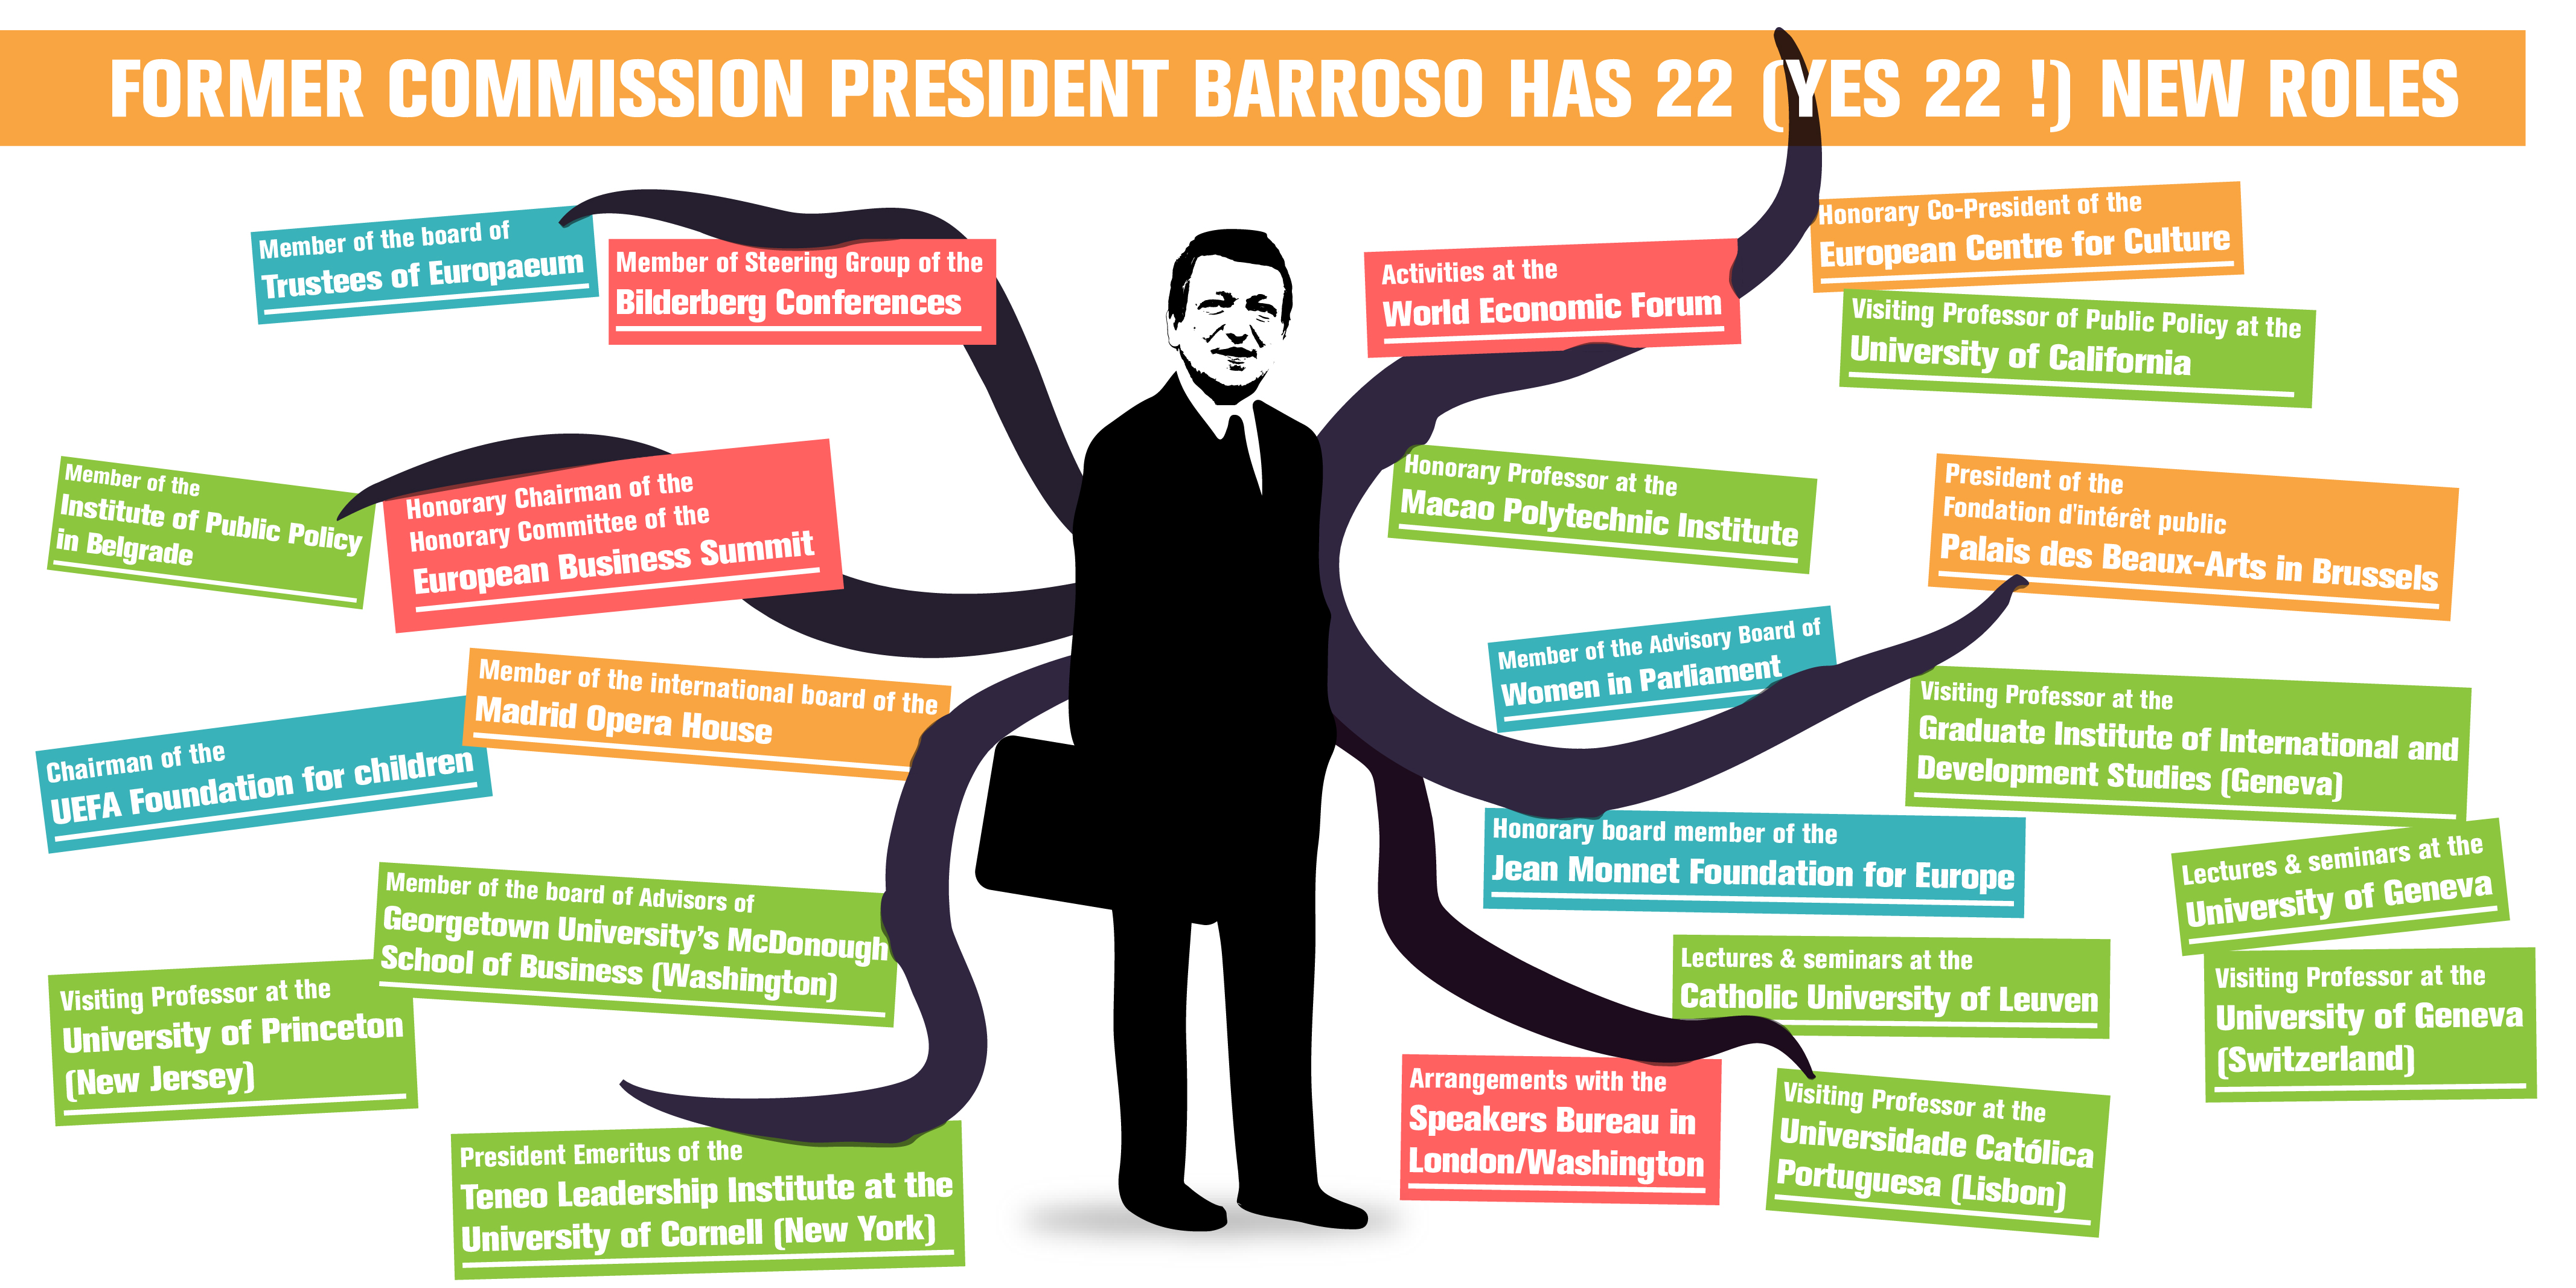 Former commission president Barroso has 22 (yes 22 !) new roles